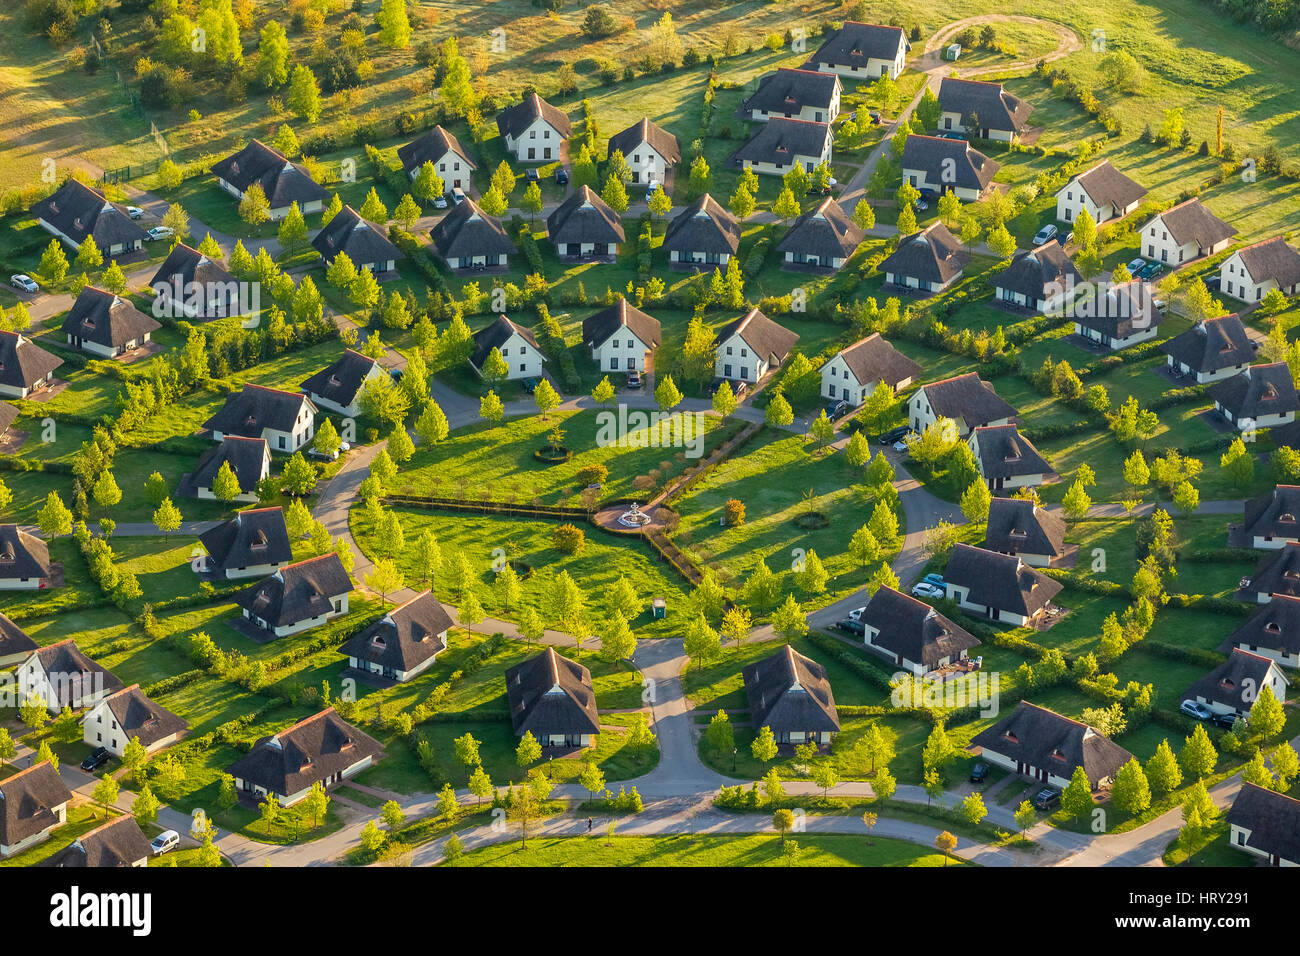 Van der Valk Ressort Linstow with scale in county Apartments, round settlements, designer settlement, cottages, - Stock Image